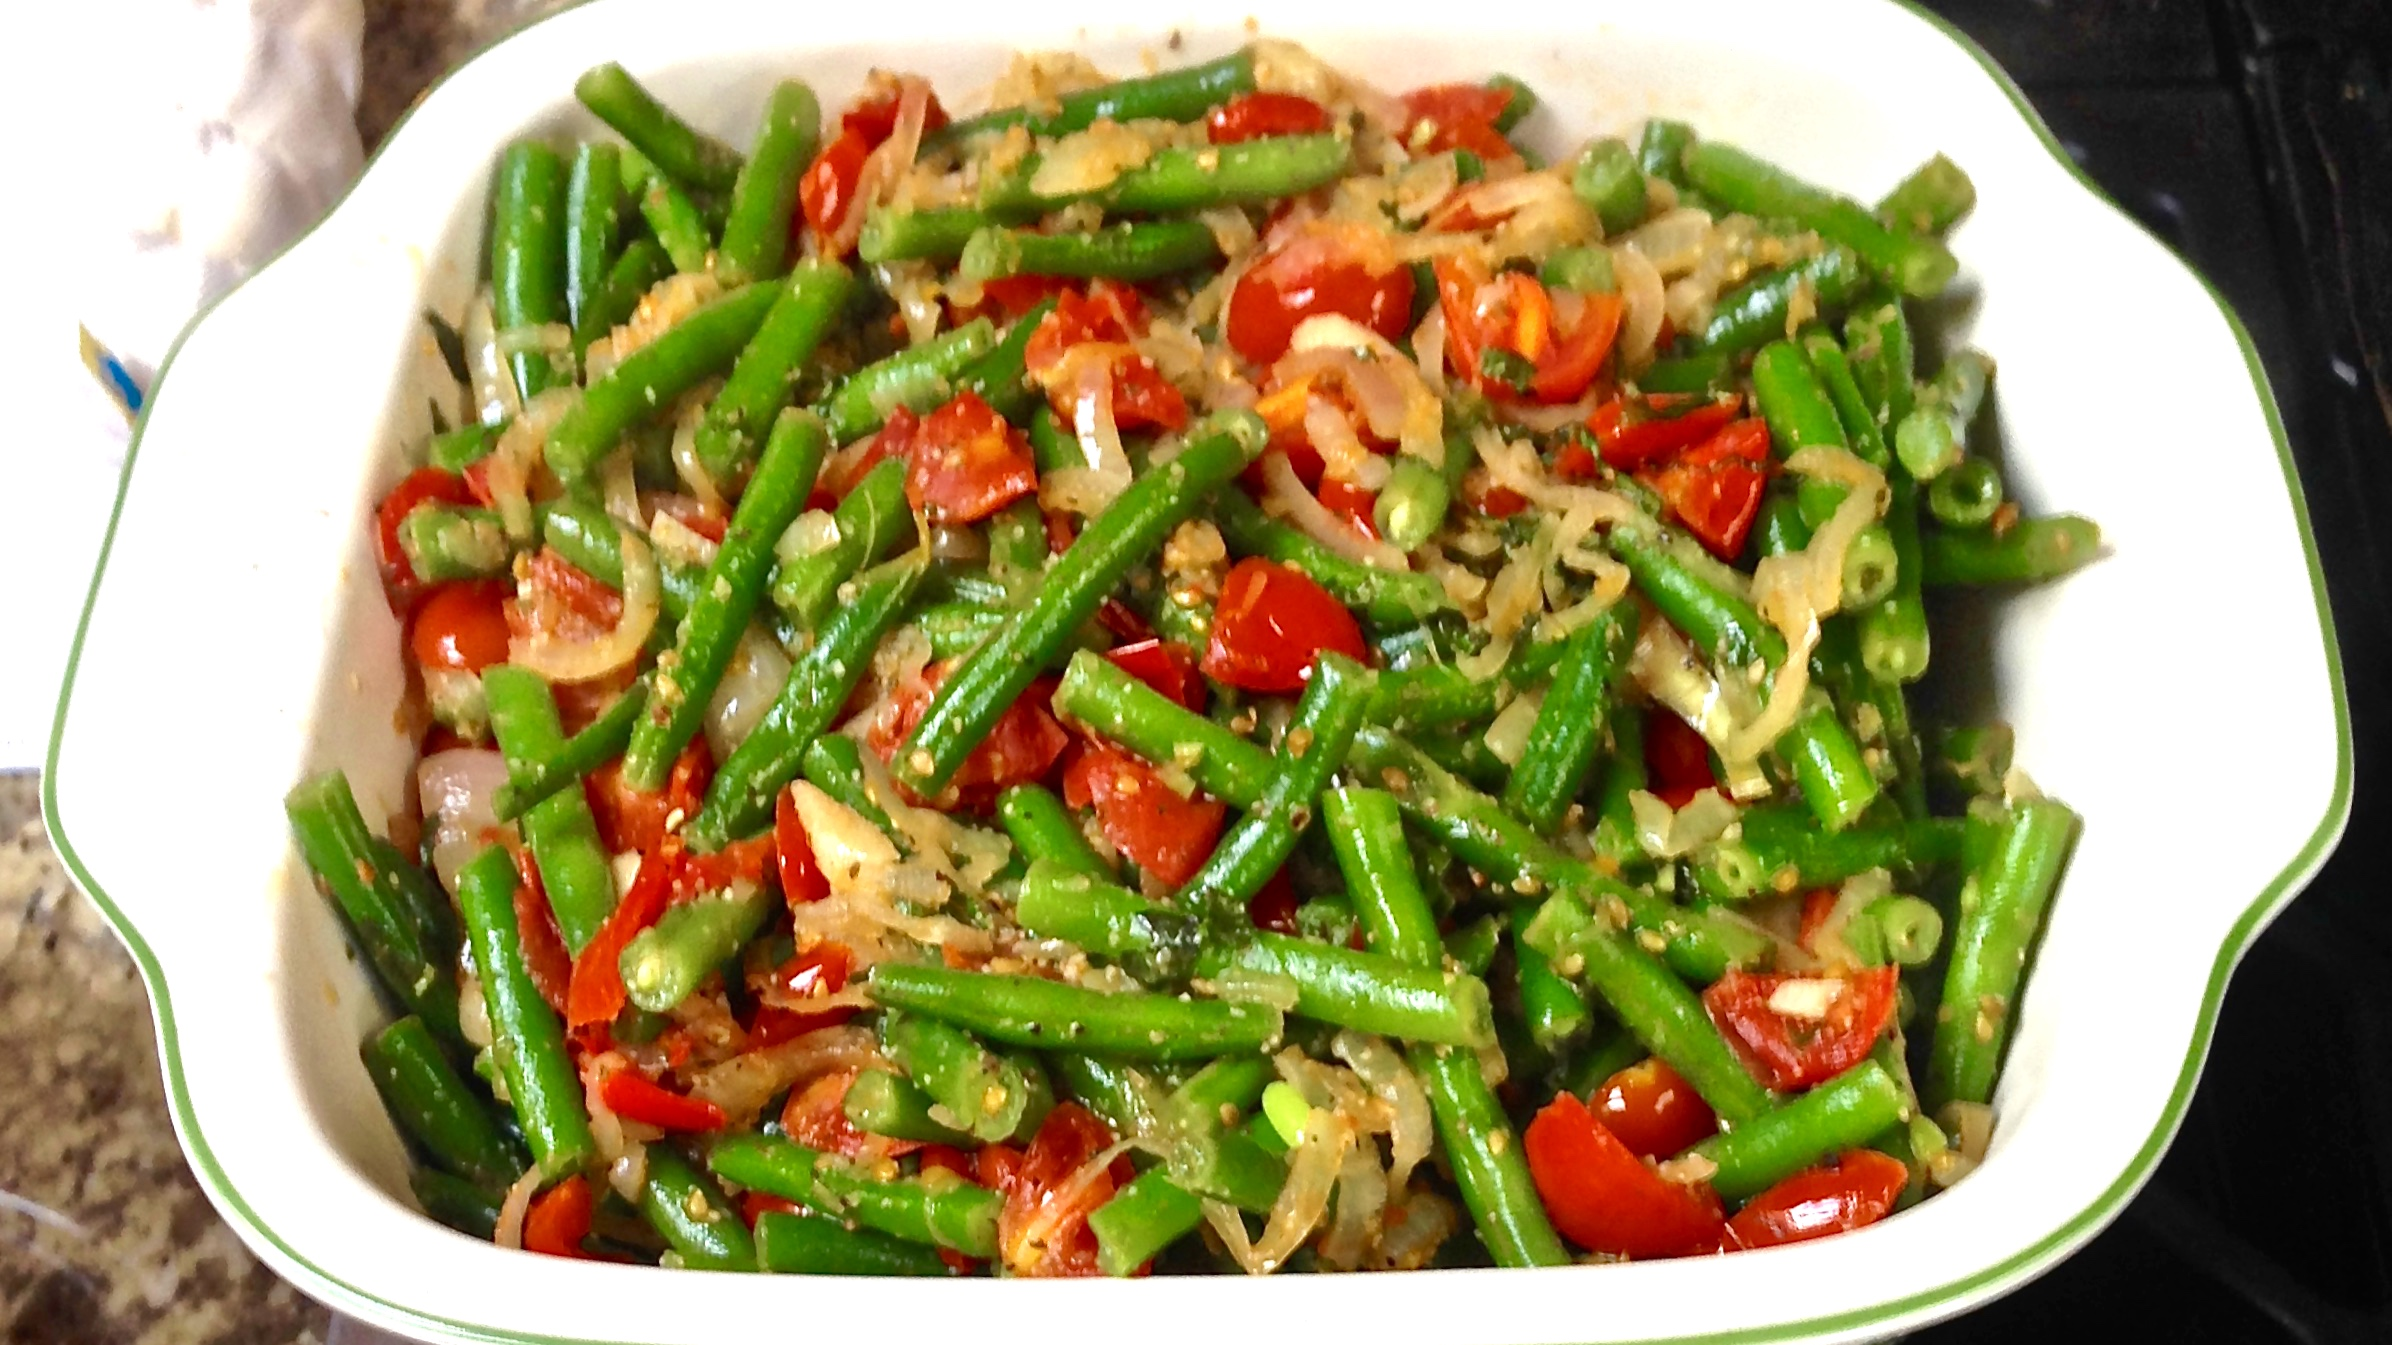 Green Beans sautèed with shallots, cherry tomatoes, and red peppers… tossed in a lemon, garlic-butter. So good!